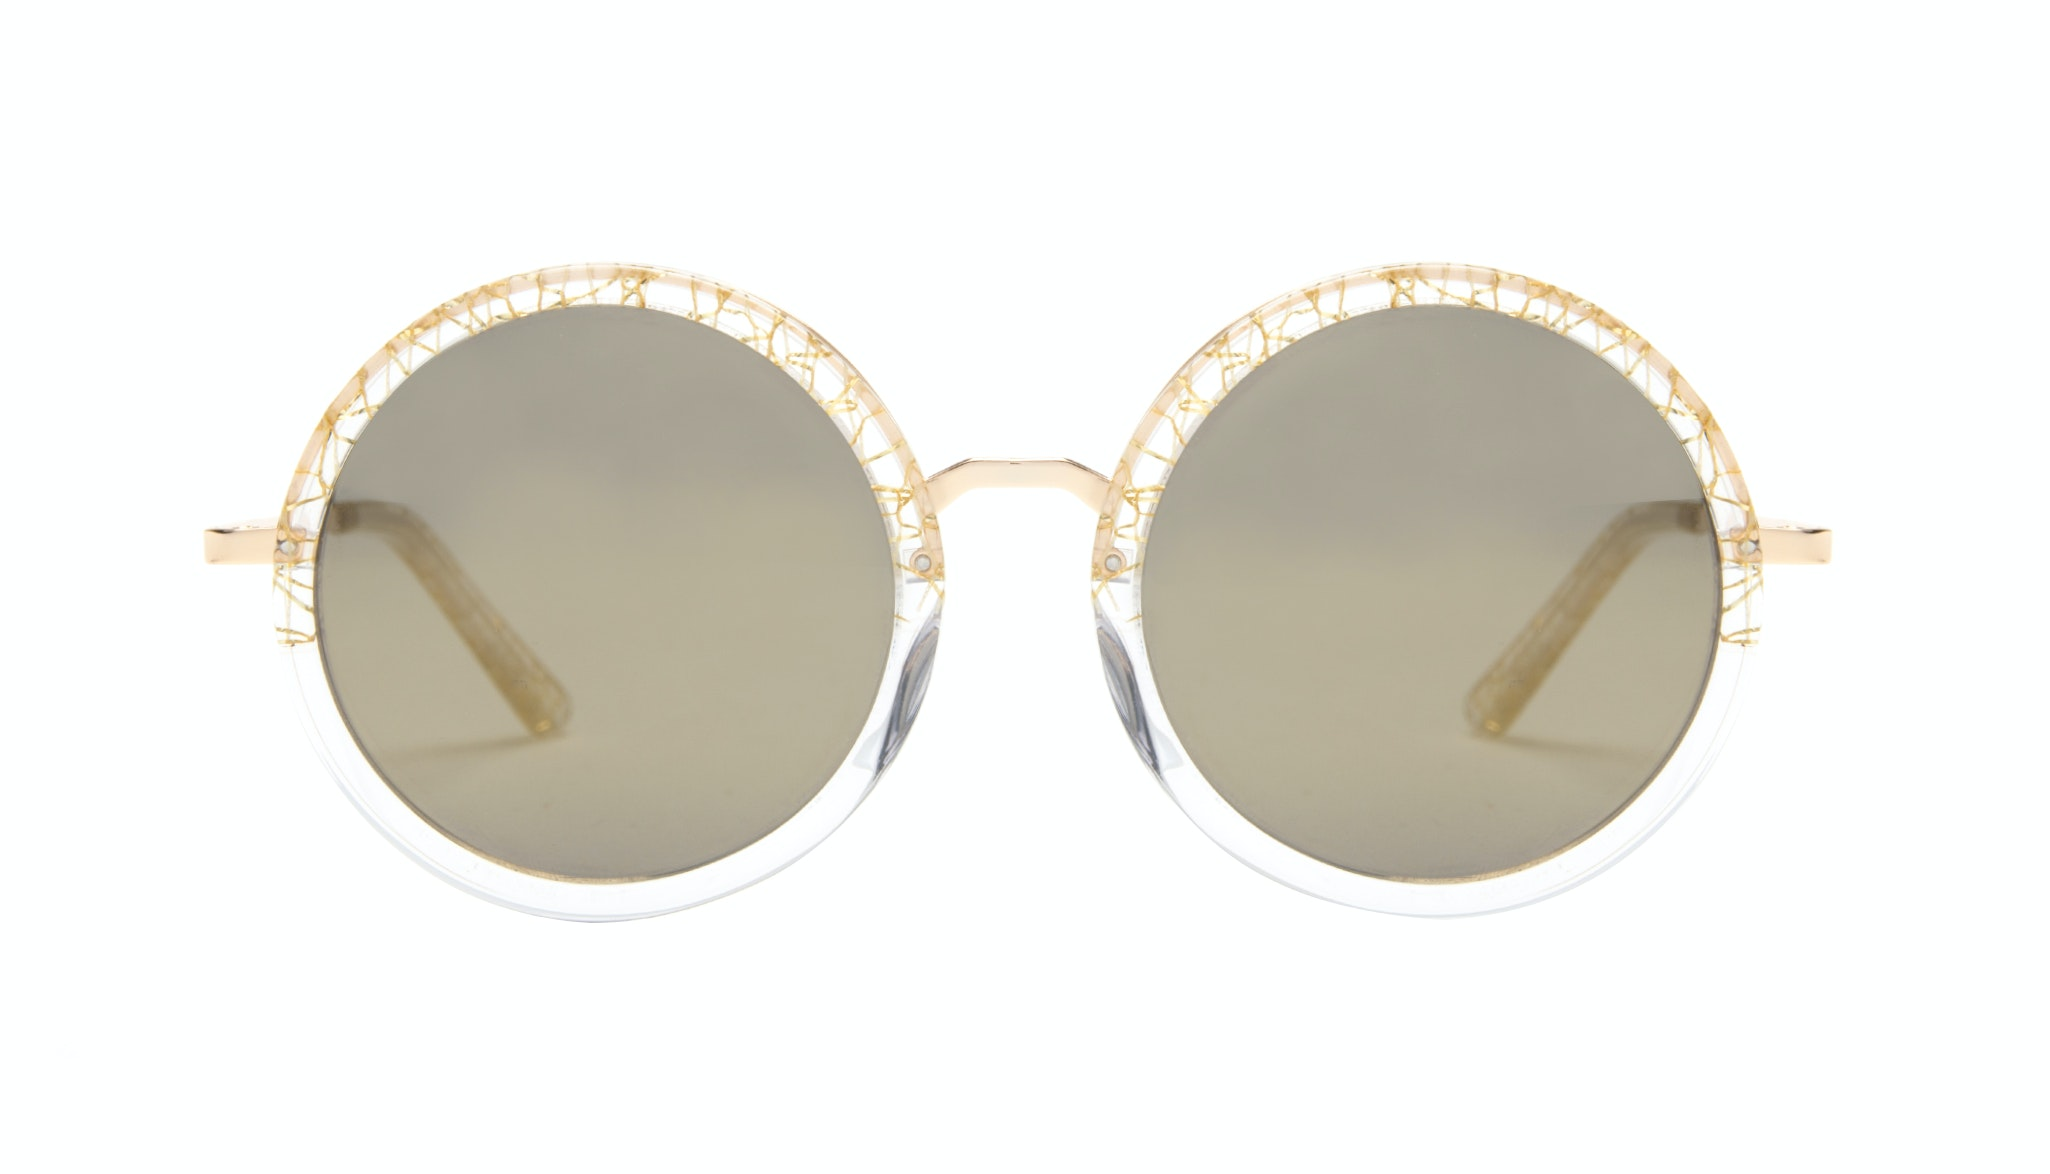 Affordable Fashion Glasses Round Sunglasses Women Balance clear-champagne